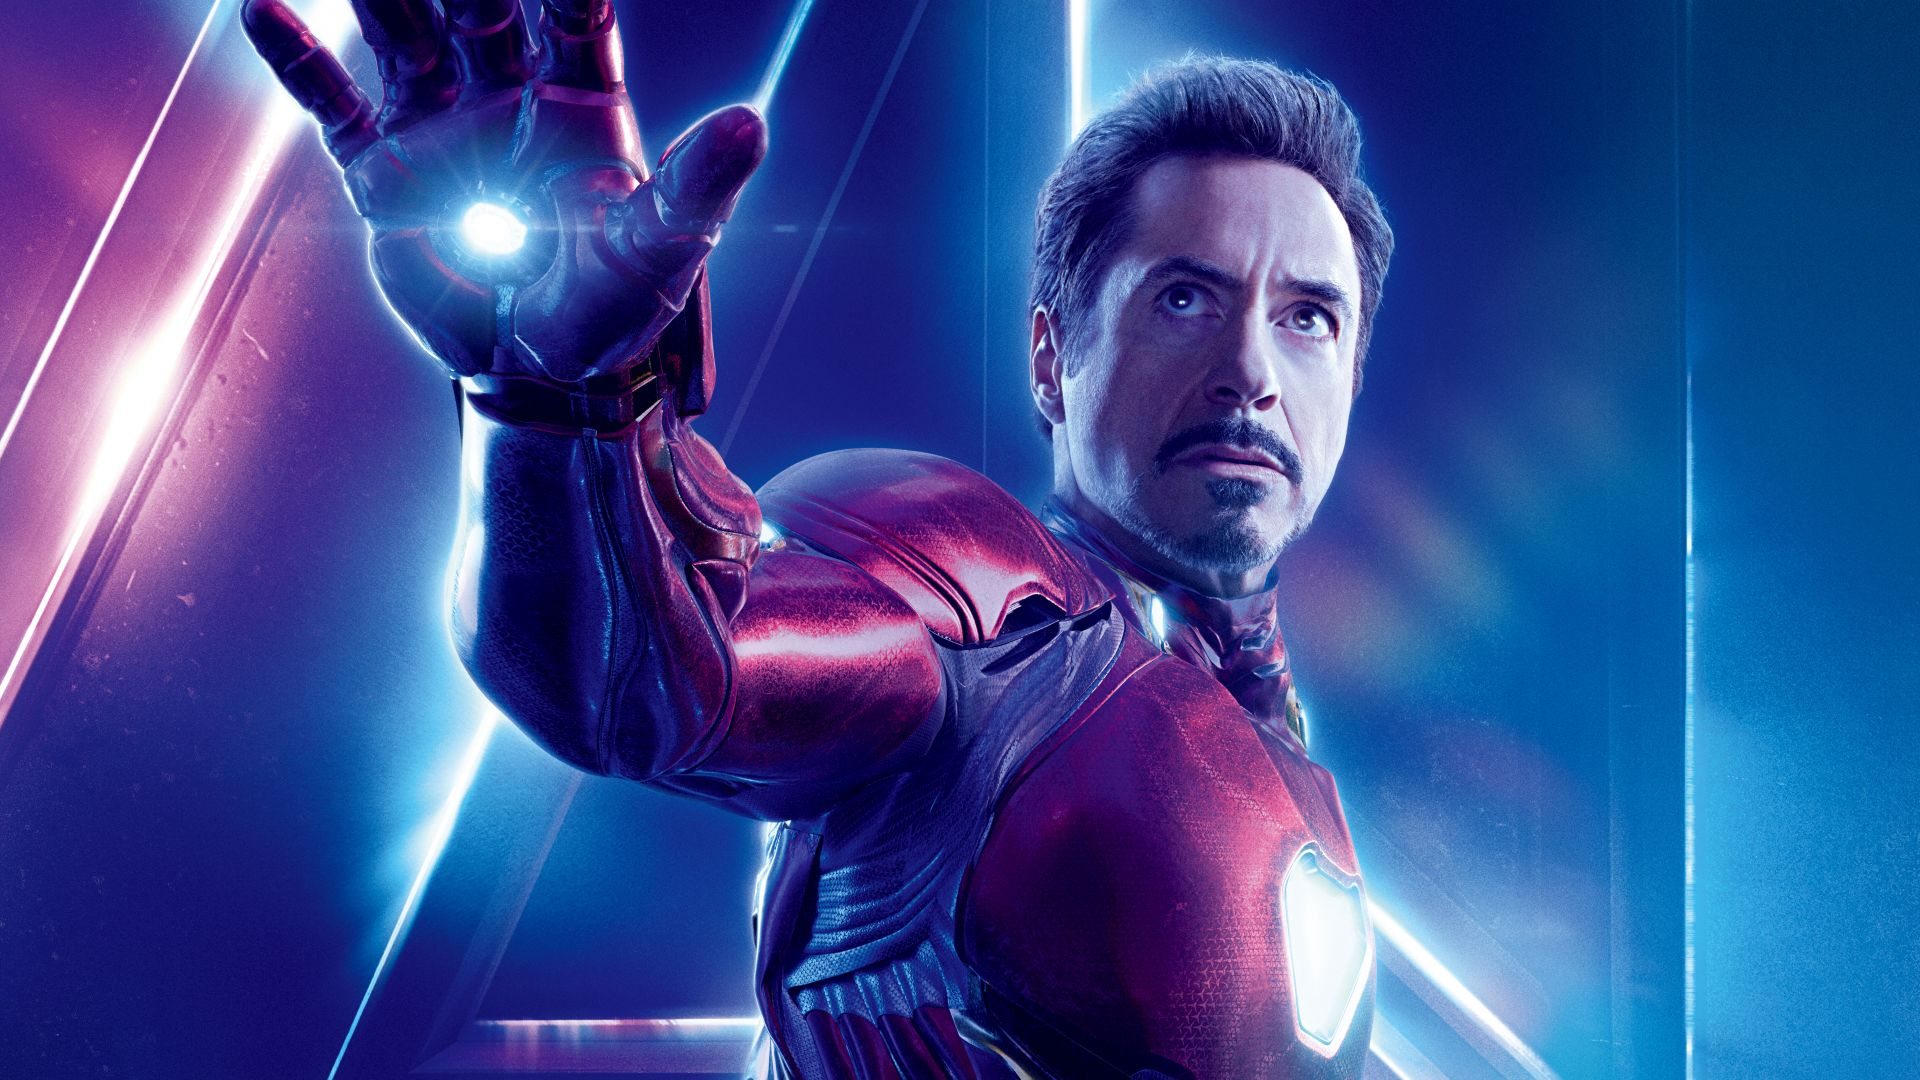 Avengers Endgame Robert downey jr Iron Man